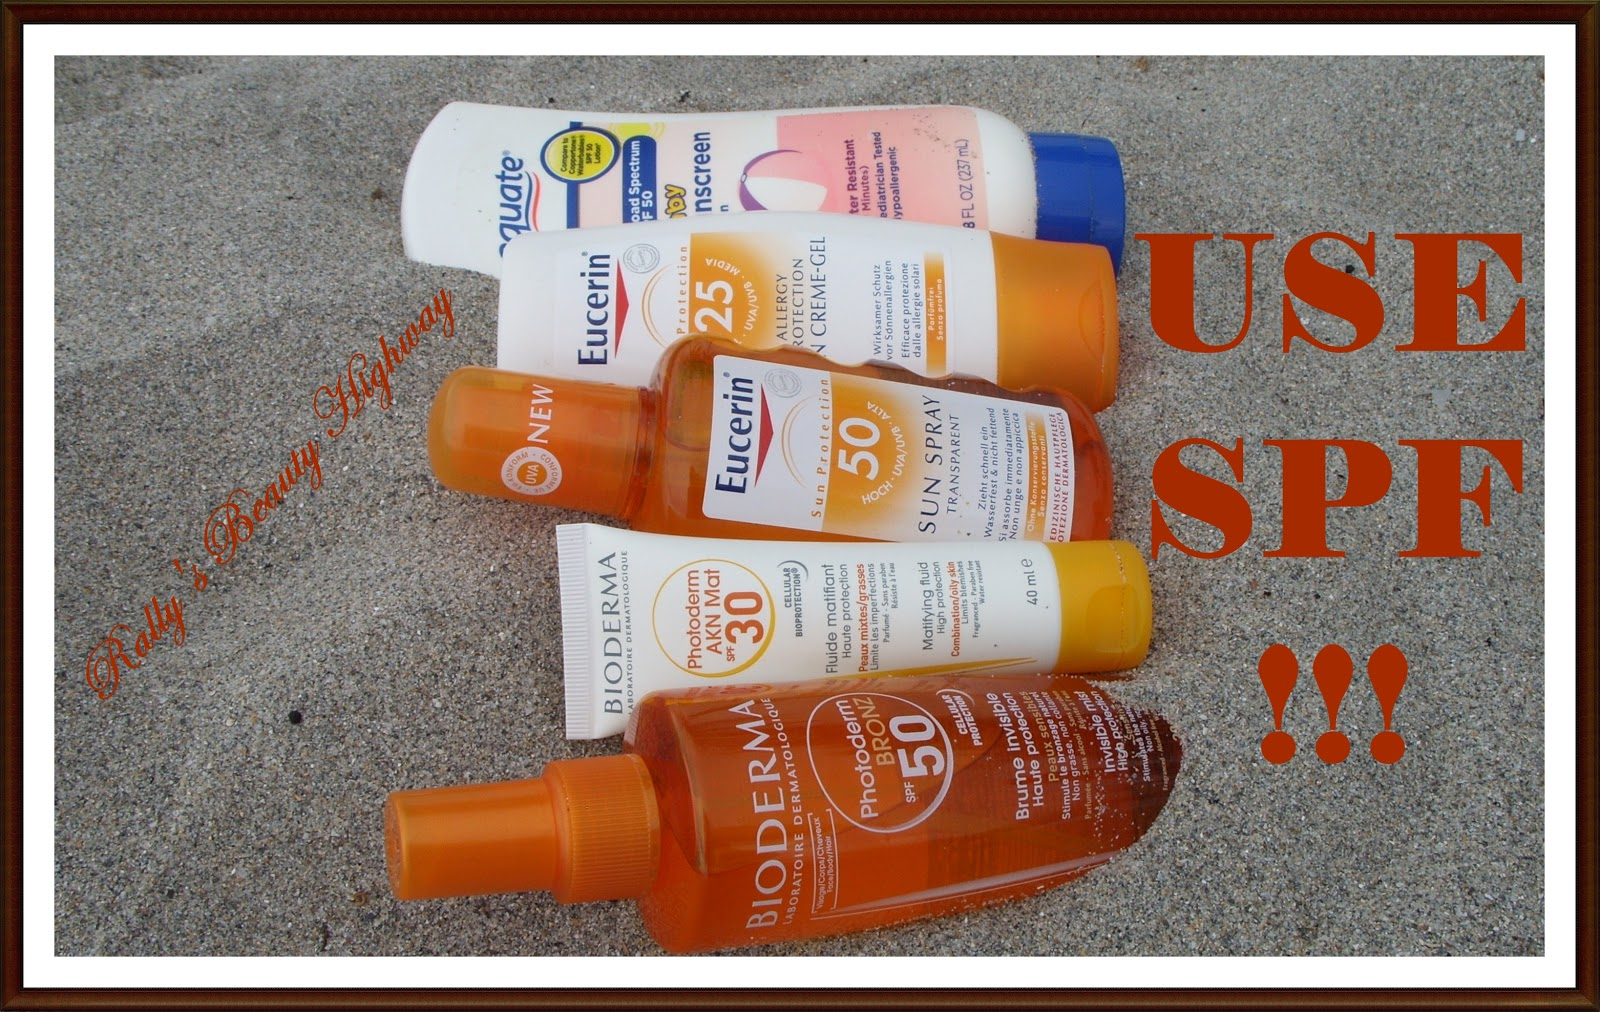 SPF, face and body care